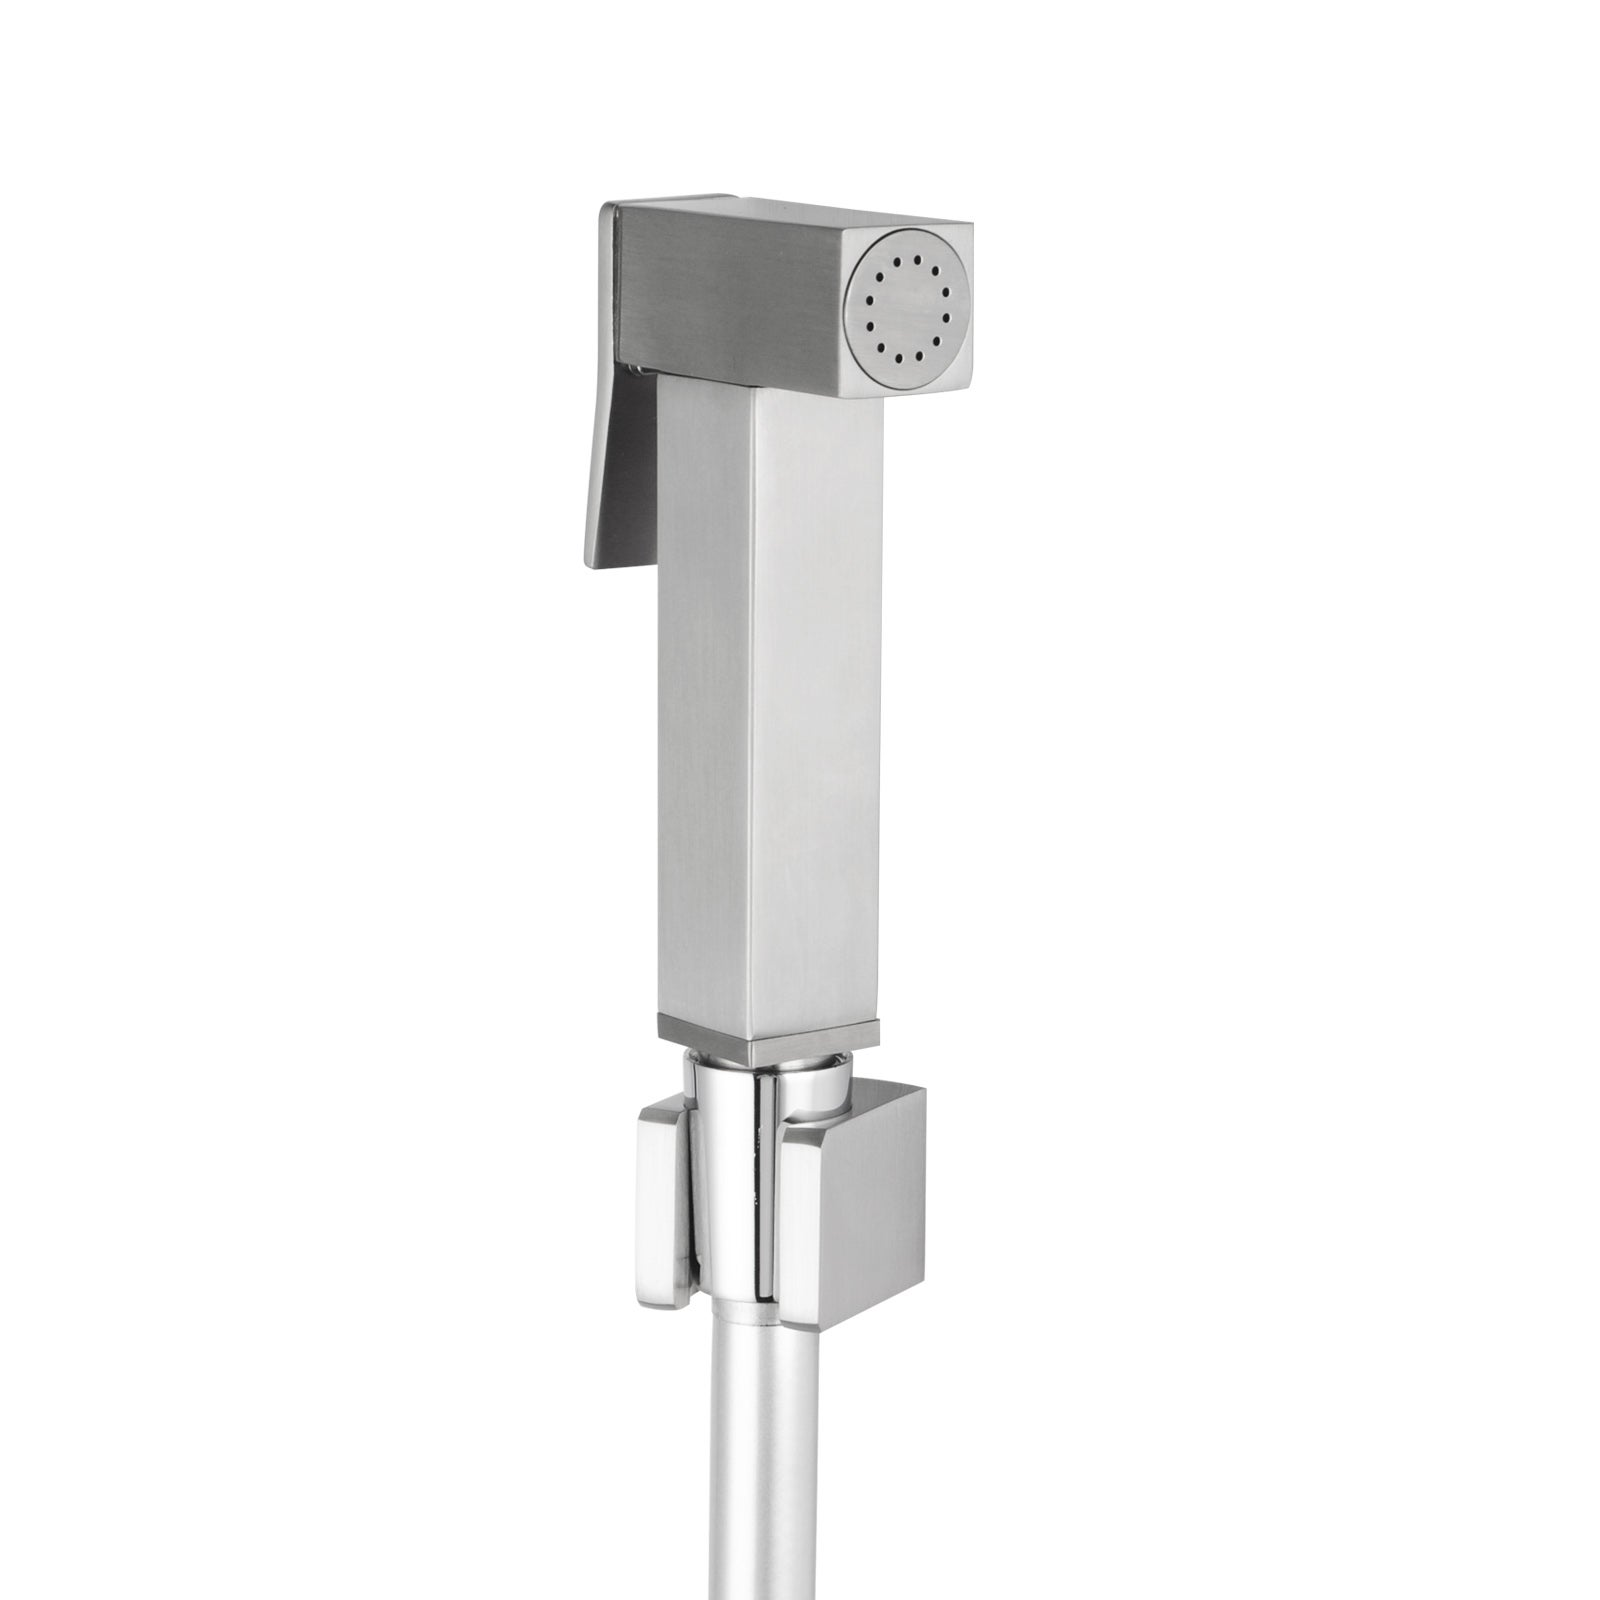 Magnificent Square Brass Brushed Nickel Toilet Bidet Spray Kit With 1 2M Pvc Hose Pabps2019 Chair Design Images Pabps2019Com